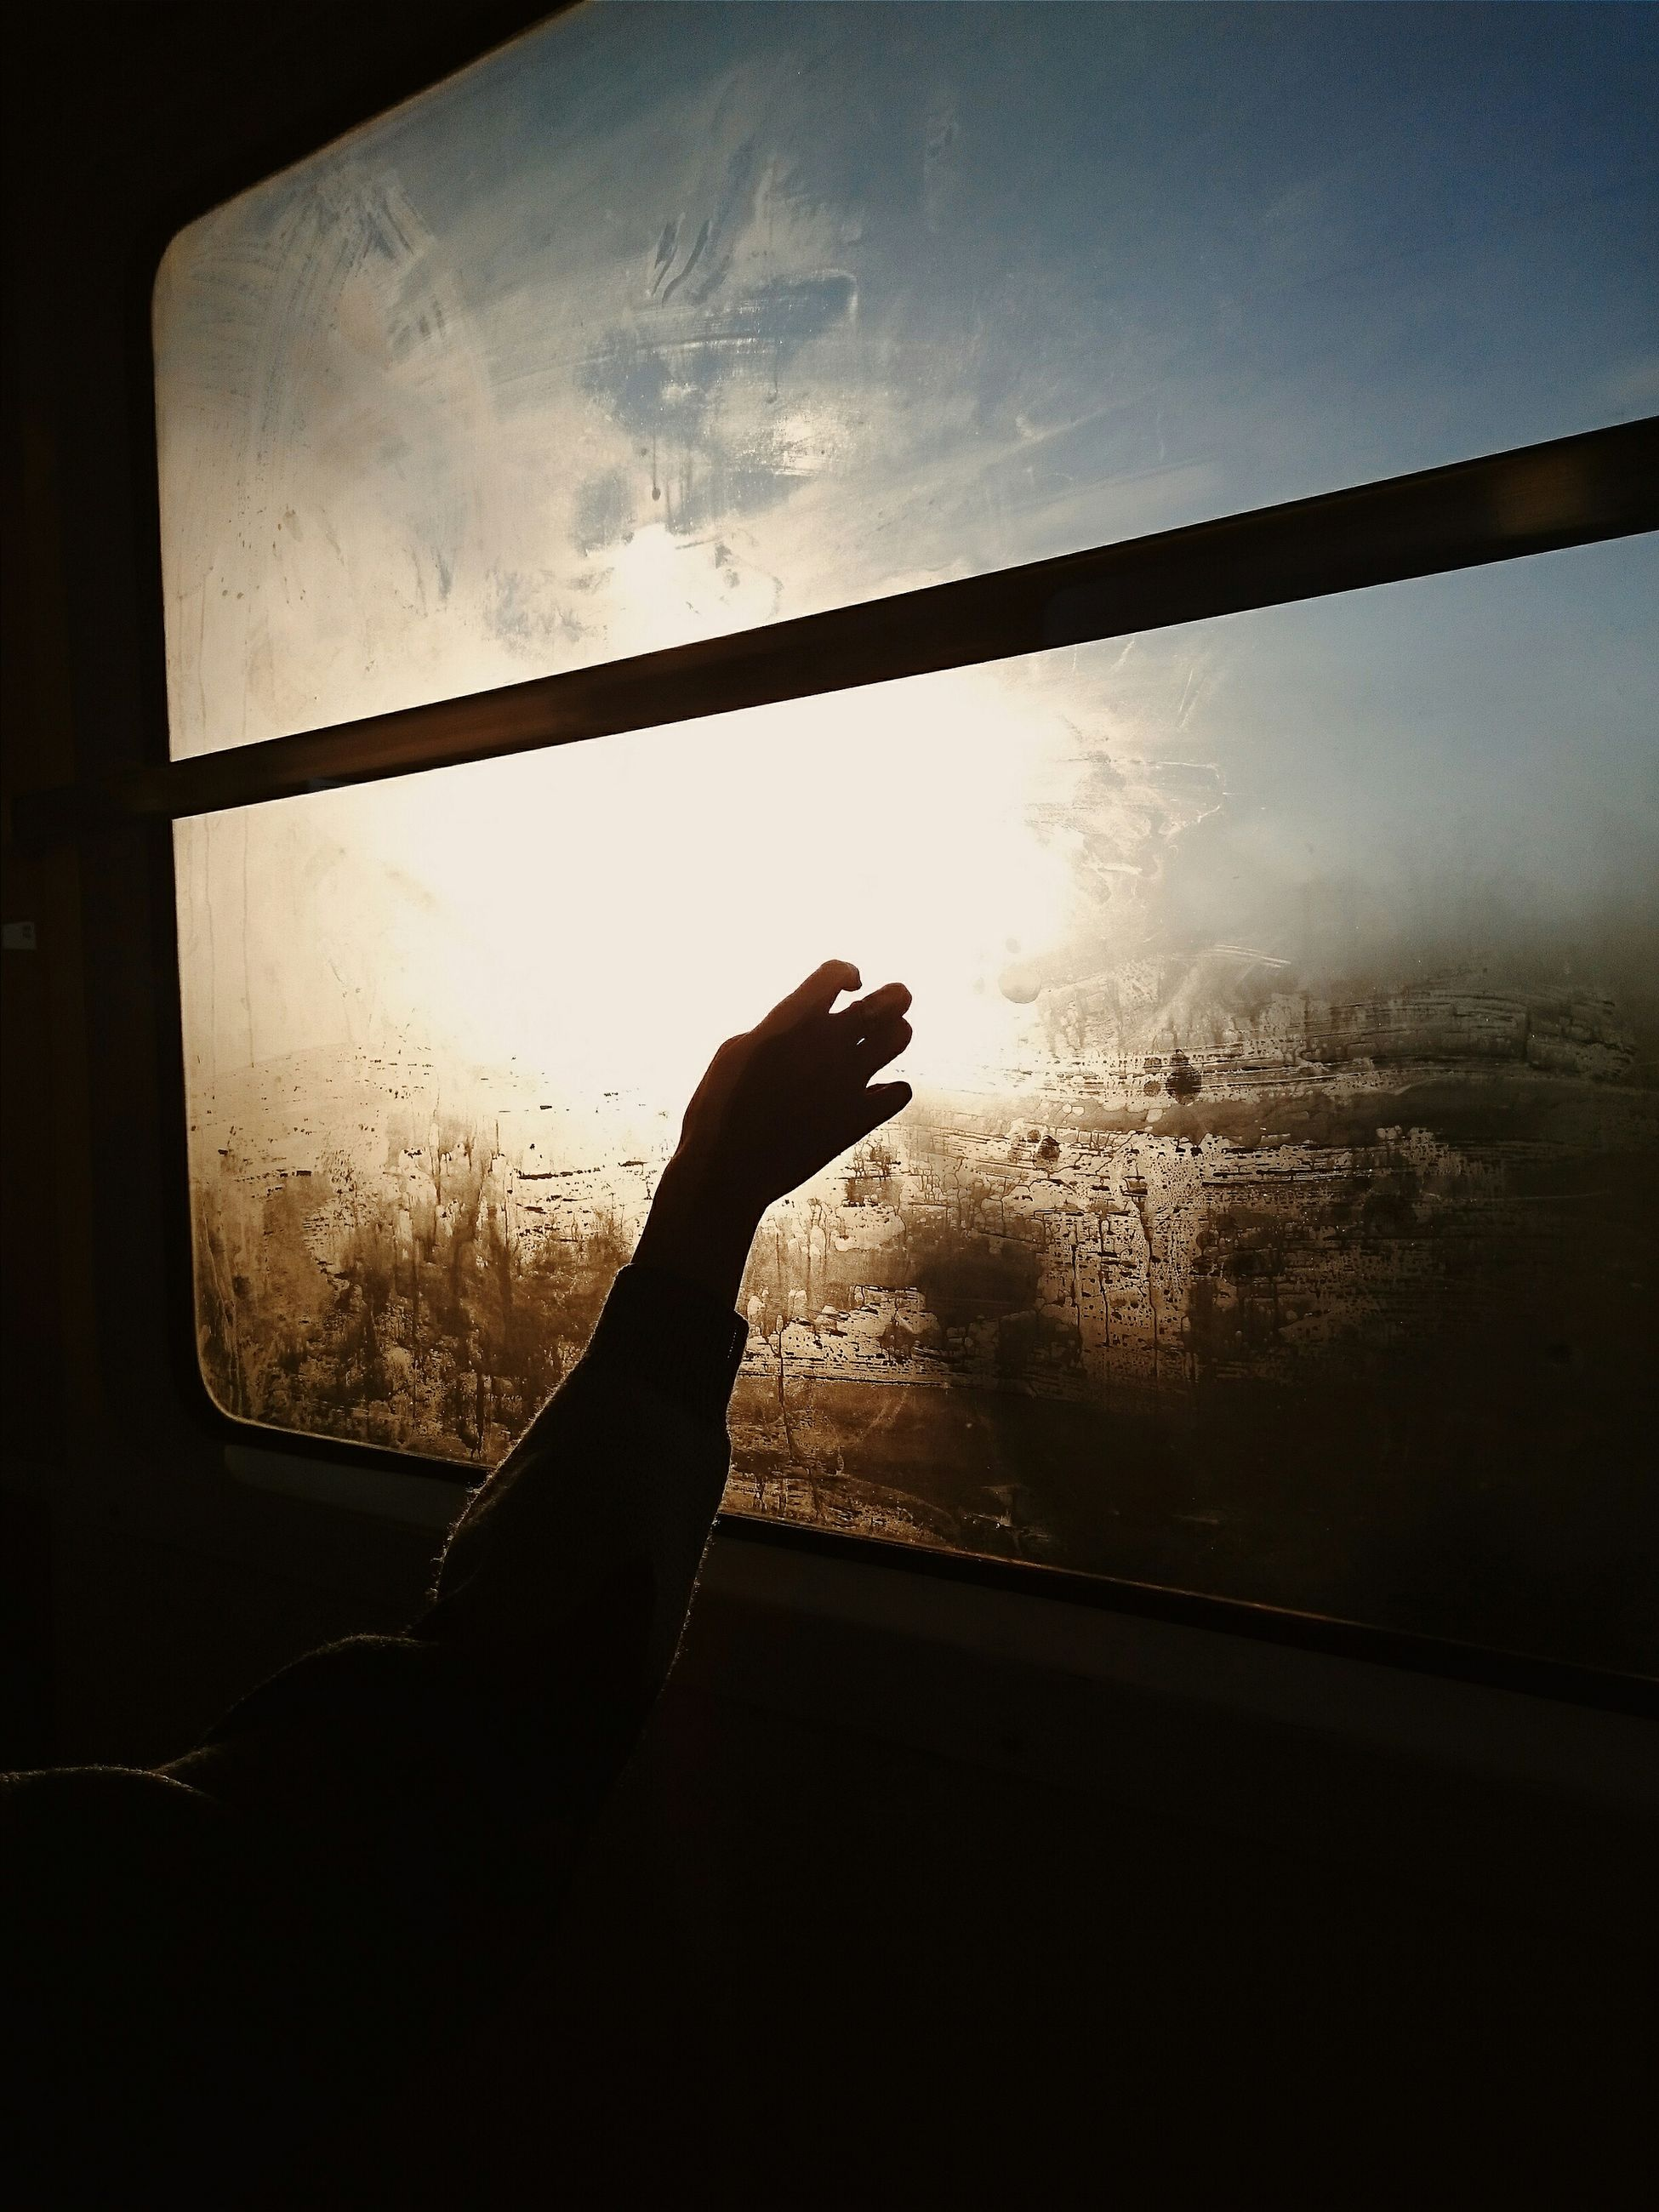 silhouette, window, indoors, person, sky, glass - material, transparent, part of, water, cropped, unrecognizable person, sunset, close-up, reflection, dusk, dark, looking through window